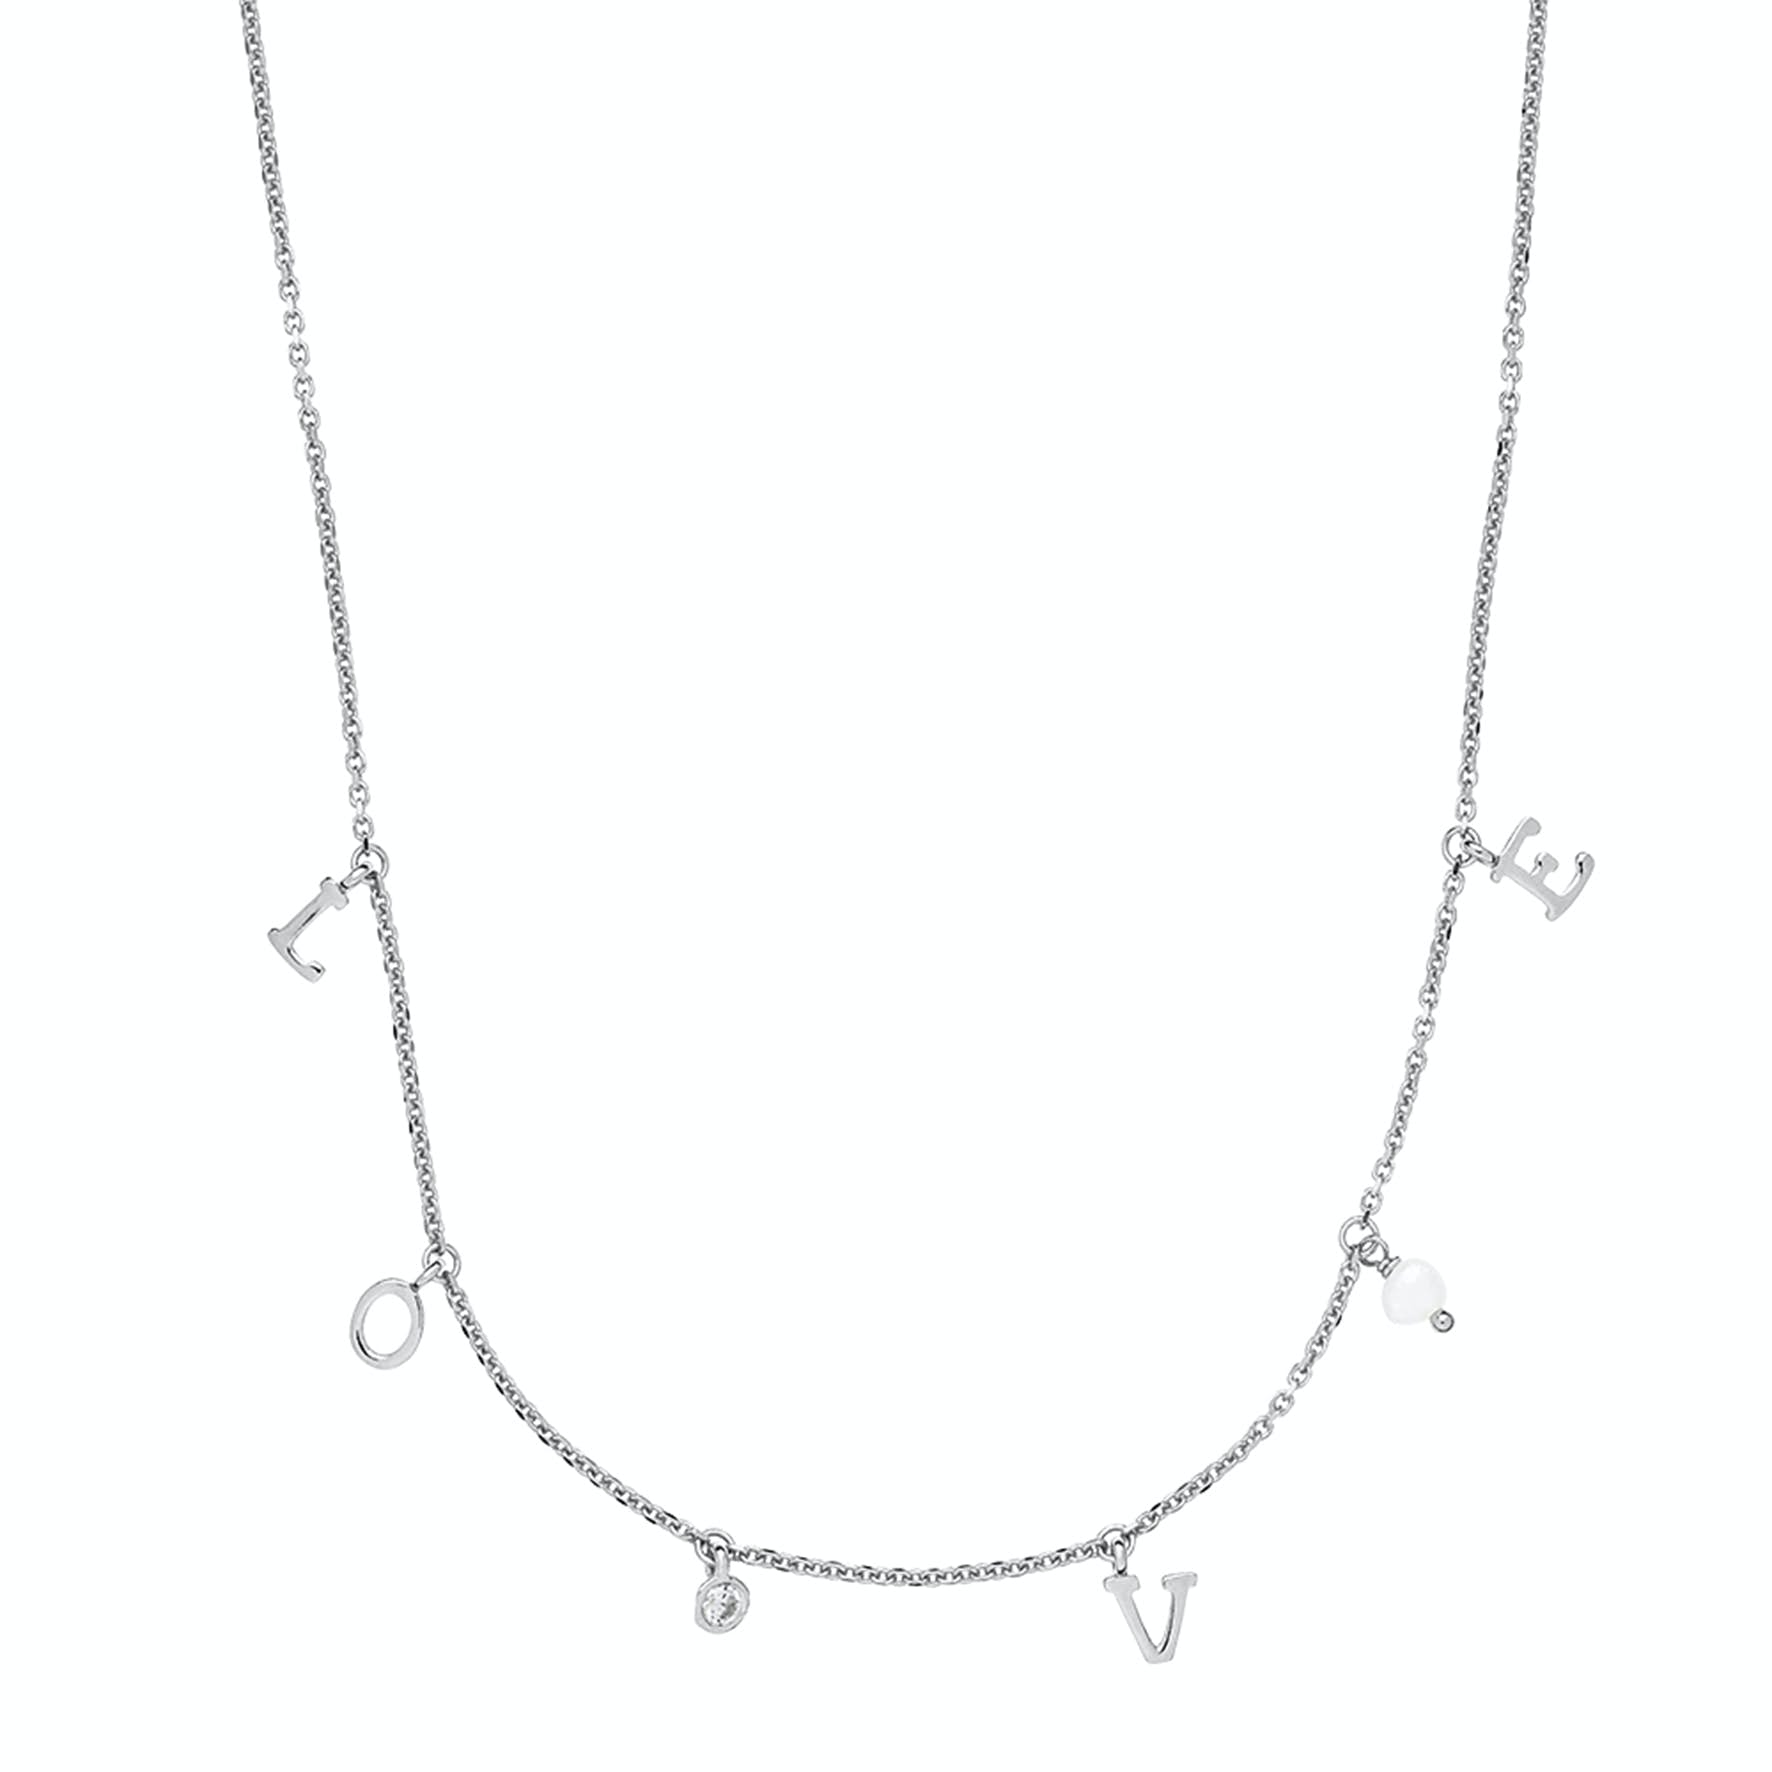 Passion Necklace from Izabel Camille in Silver Sterling 925